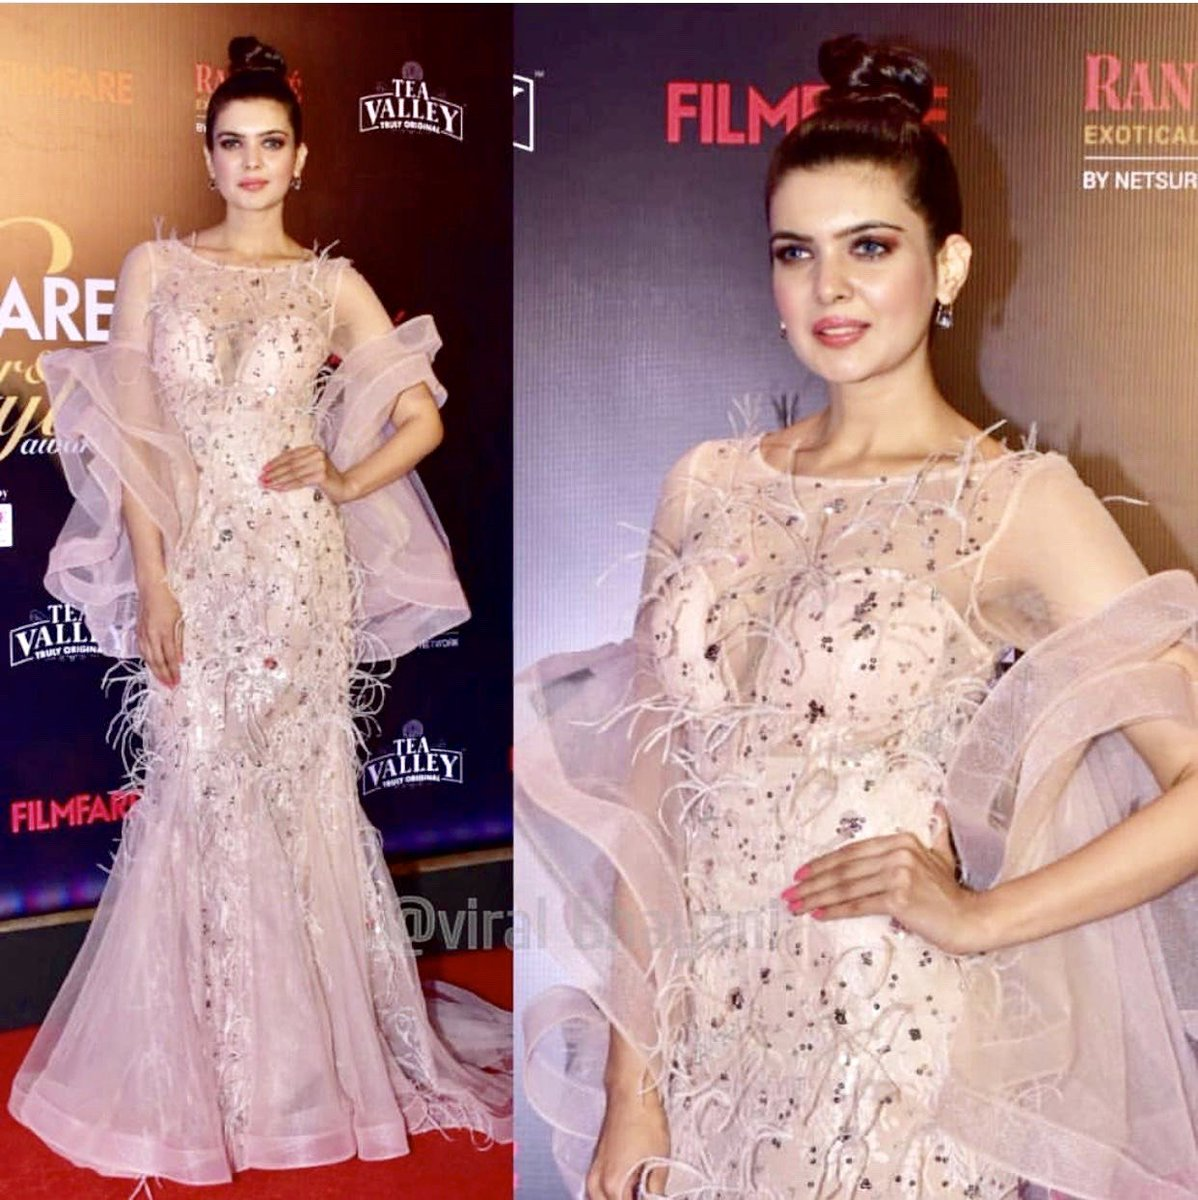 It&#39;s All About feeling like a princess Last night at the ever so amazing #FilmfareGlamourAndStyleAwards at the #TeaValley<br>http://pic.twitter.com/JDpnZtHxBC